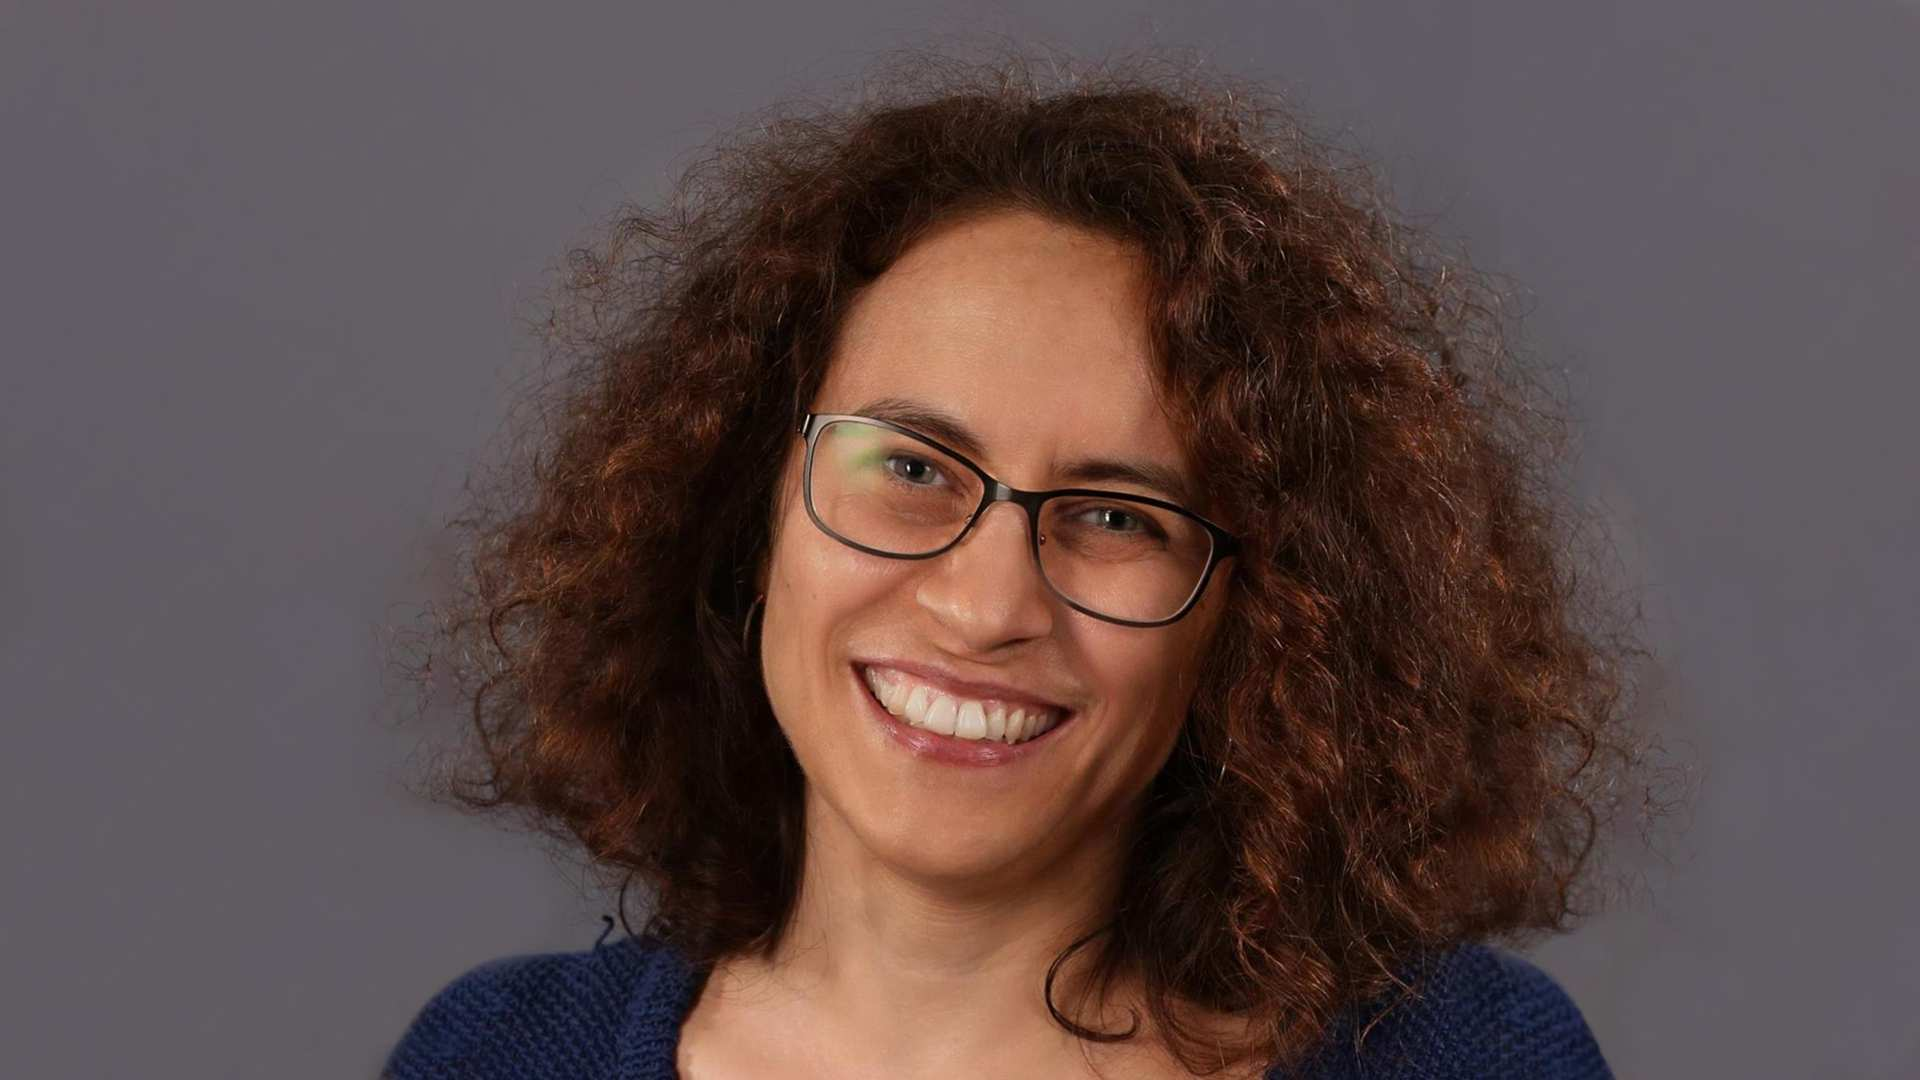 Interview with Rosaria Silipo, KNIME